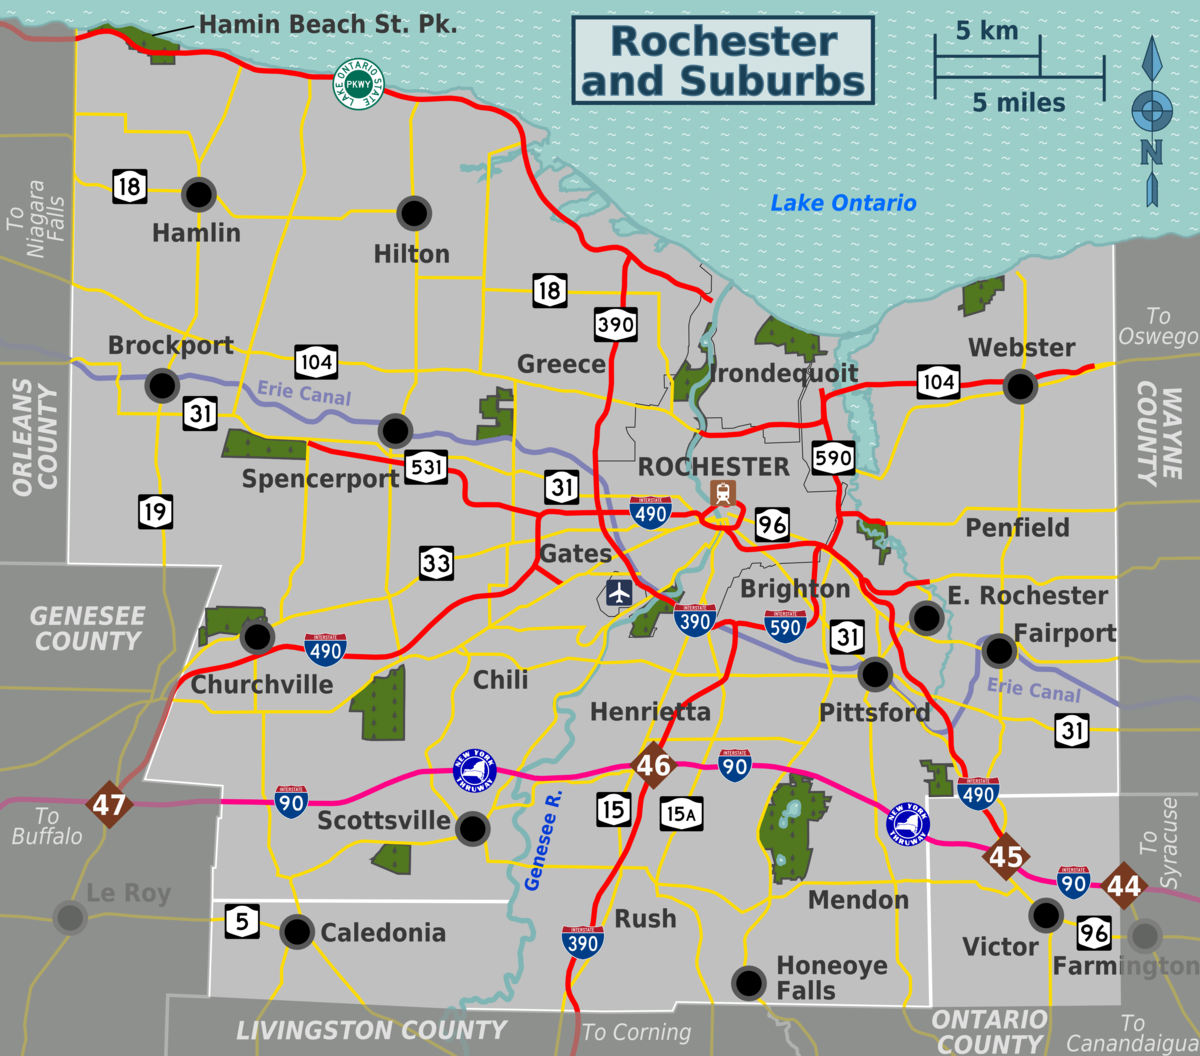 Rochester And Suburbs Travel Guide At Wikivoyage